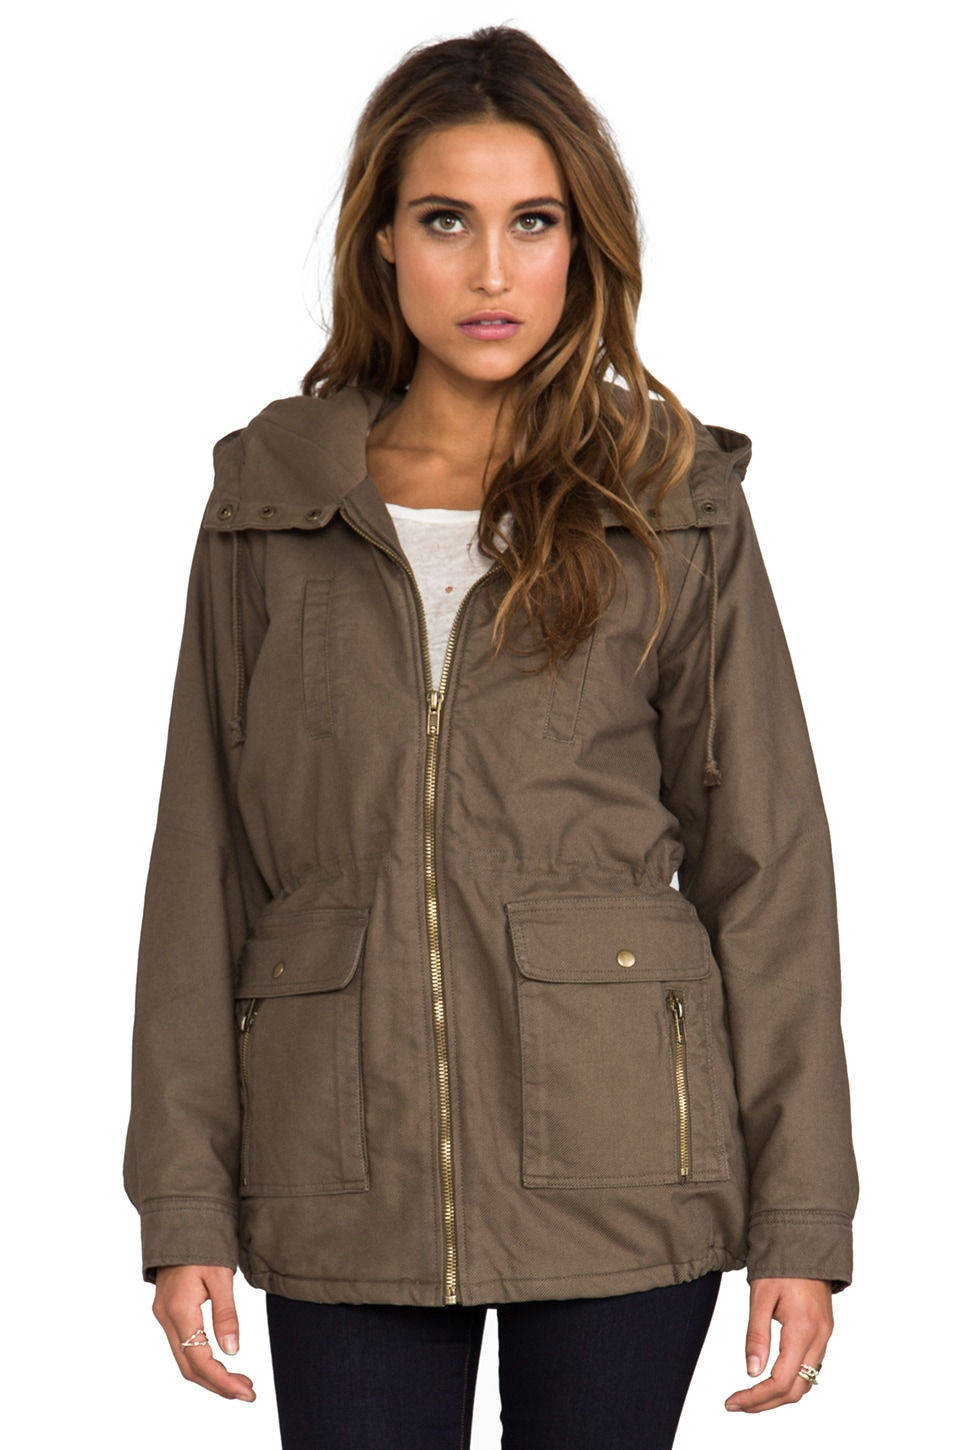 RVCA Camp Out Jacket in Military Green